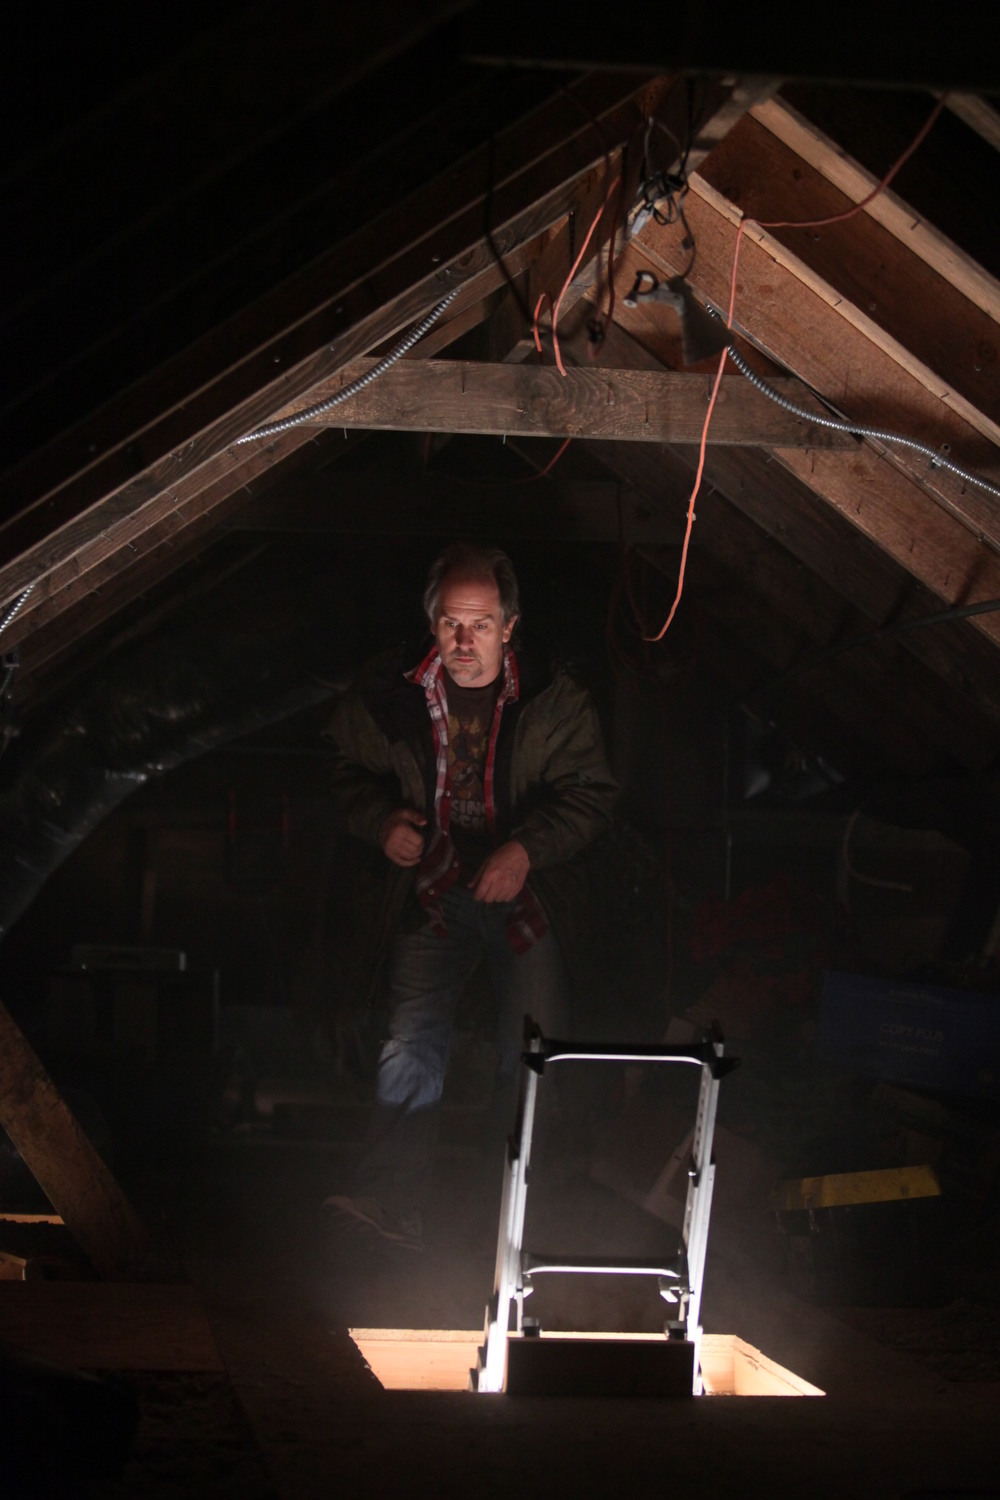 In our attic set on Crawlspace